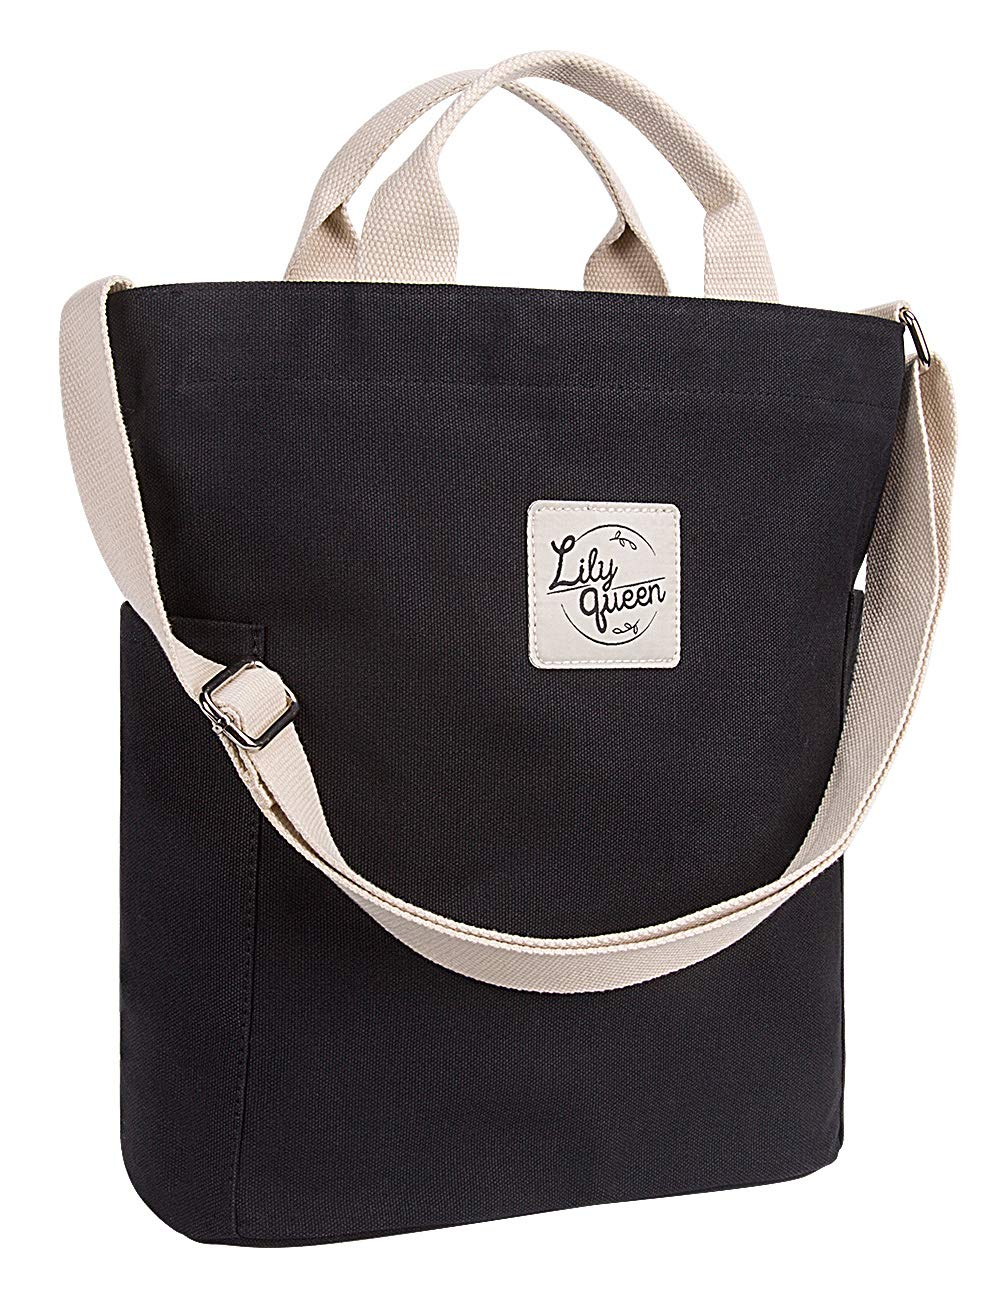 Lily Queen Women Crossbody Canvas Tote Casual Shoulder Purse Bag Durable (Black) by lily queen